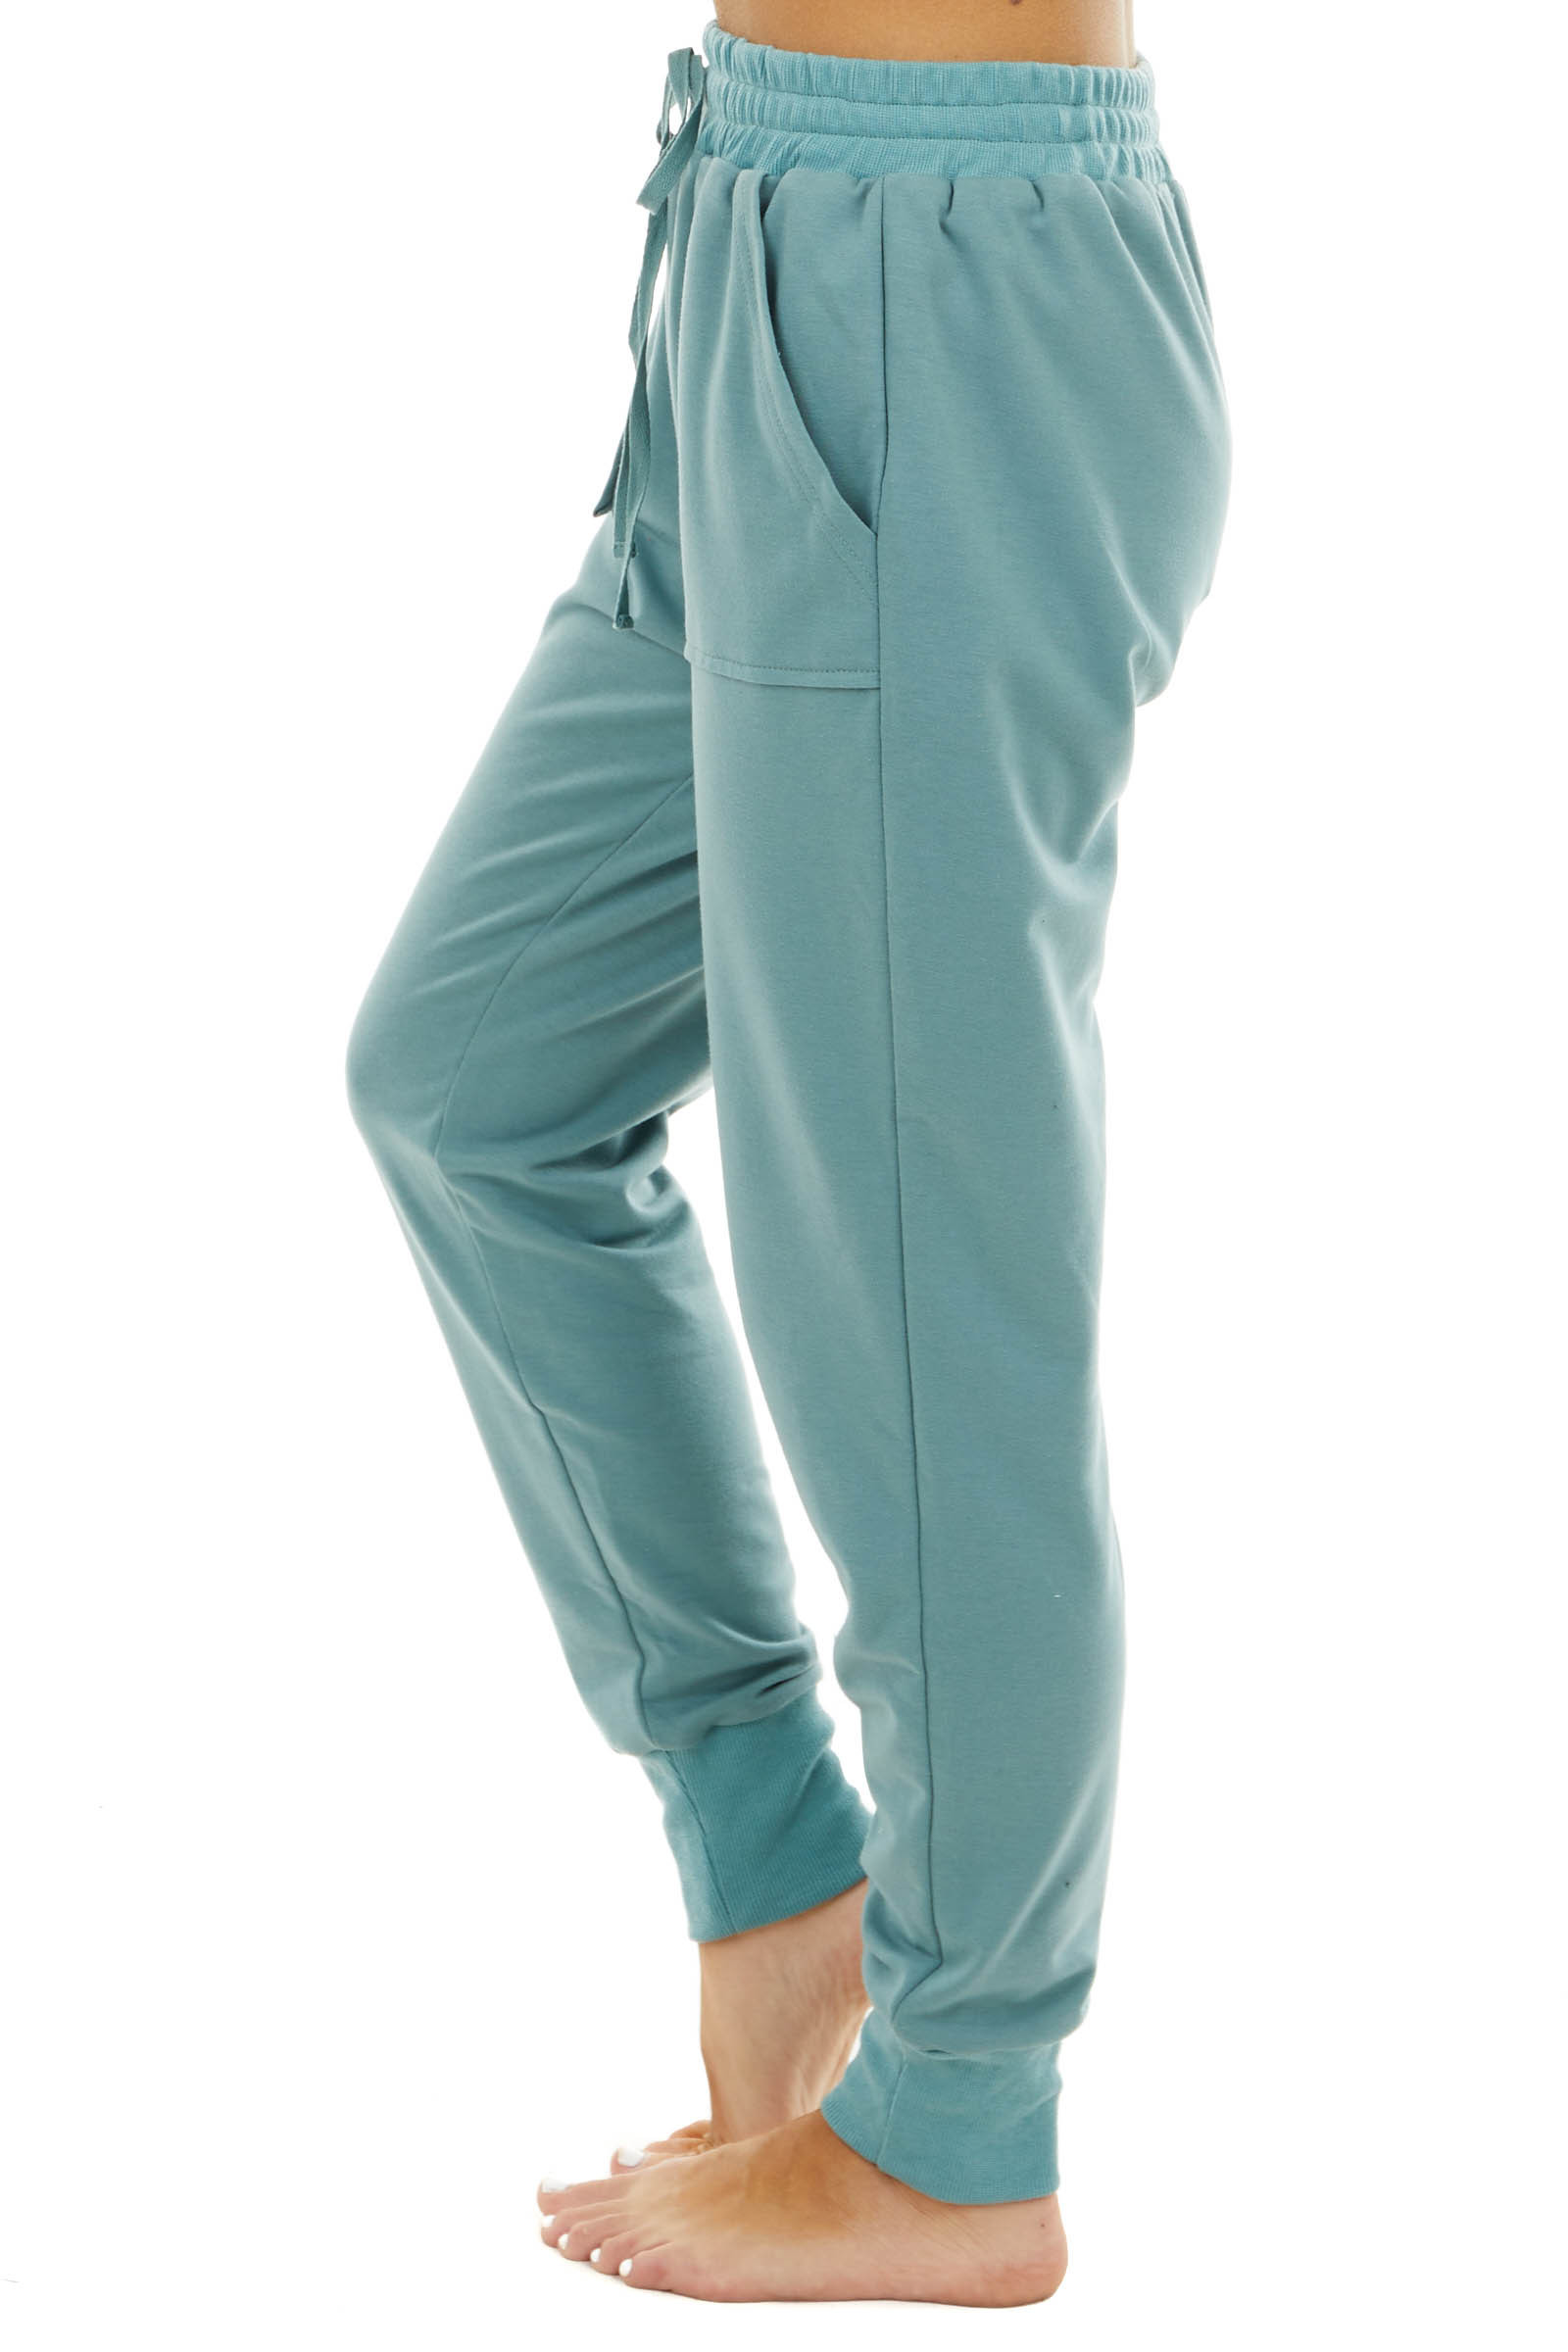 Dusty Sage Solid Stretchy Knit Jogger Pants With Pockets